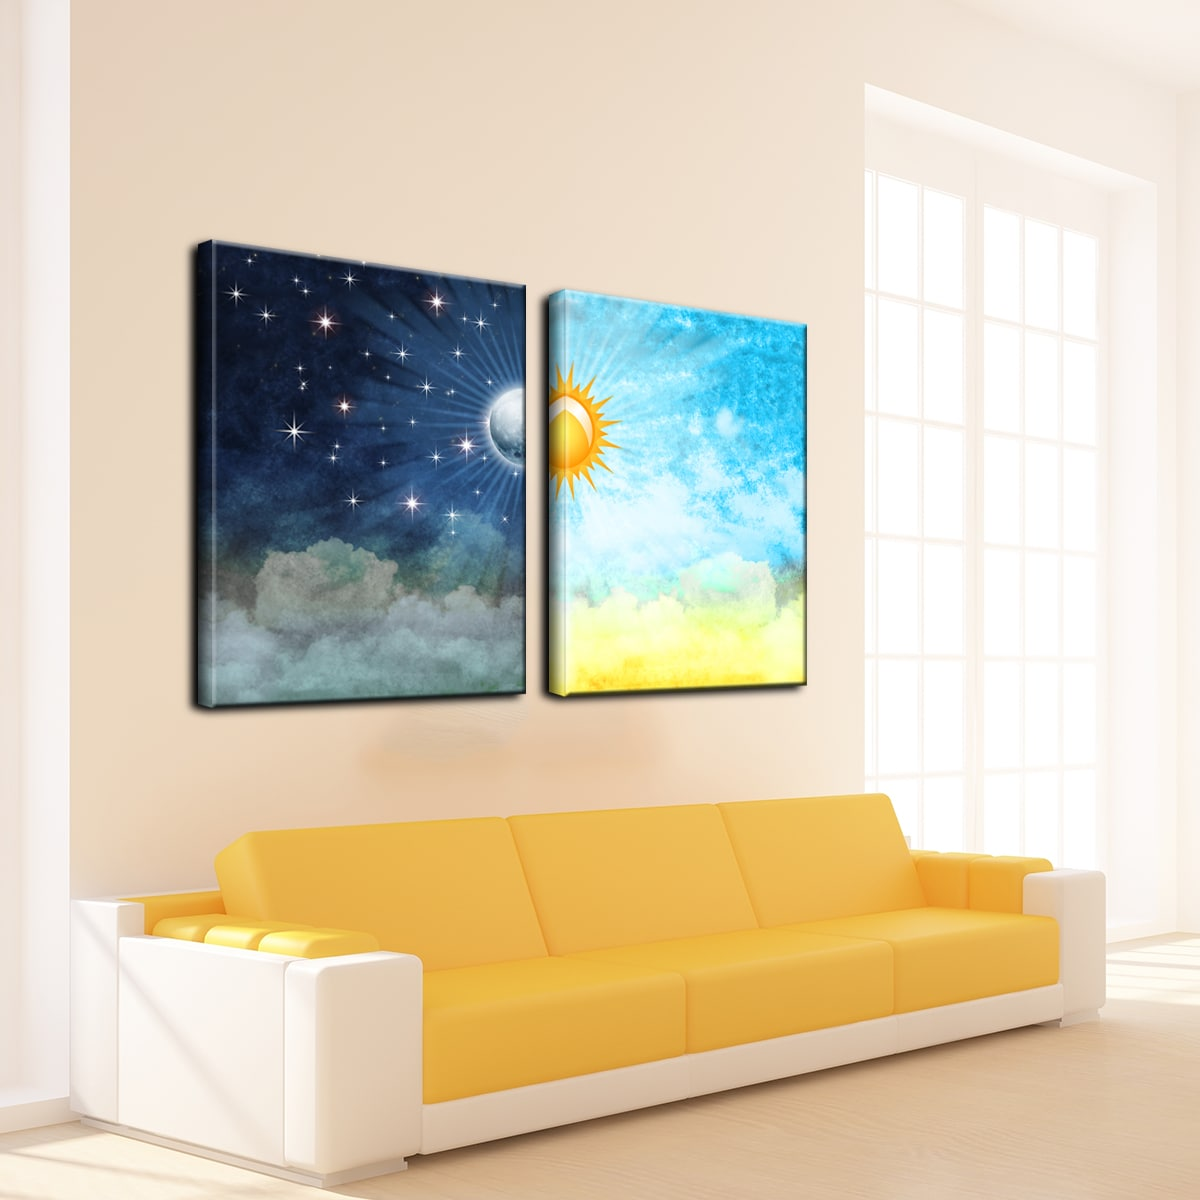 Shop Night & Day\' Gallery-wrapped Canvas Wall Art - On Sale - Free ...